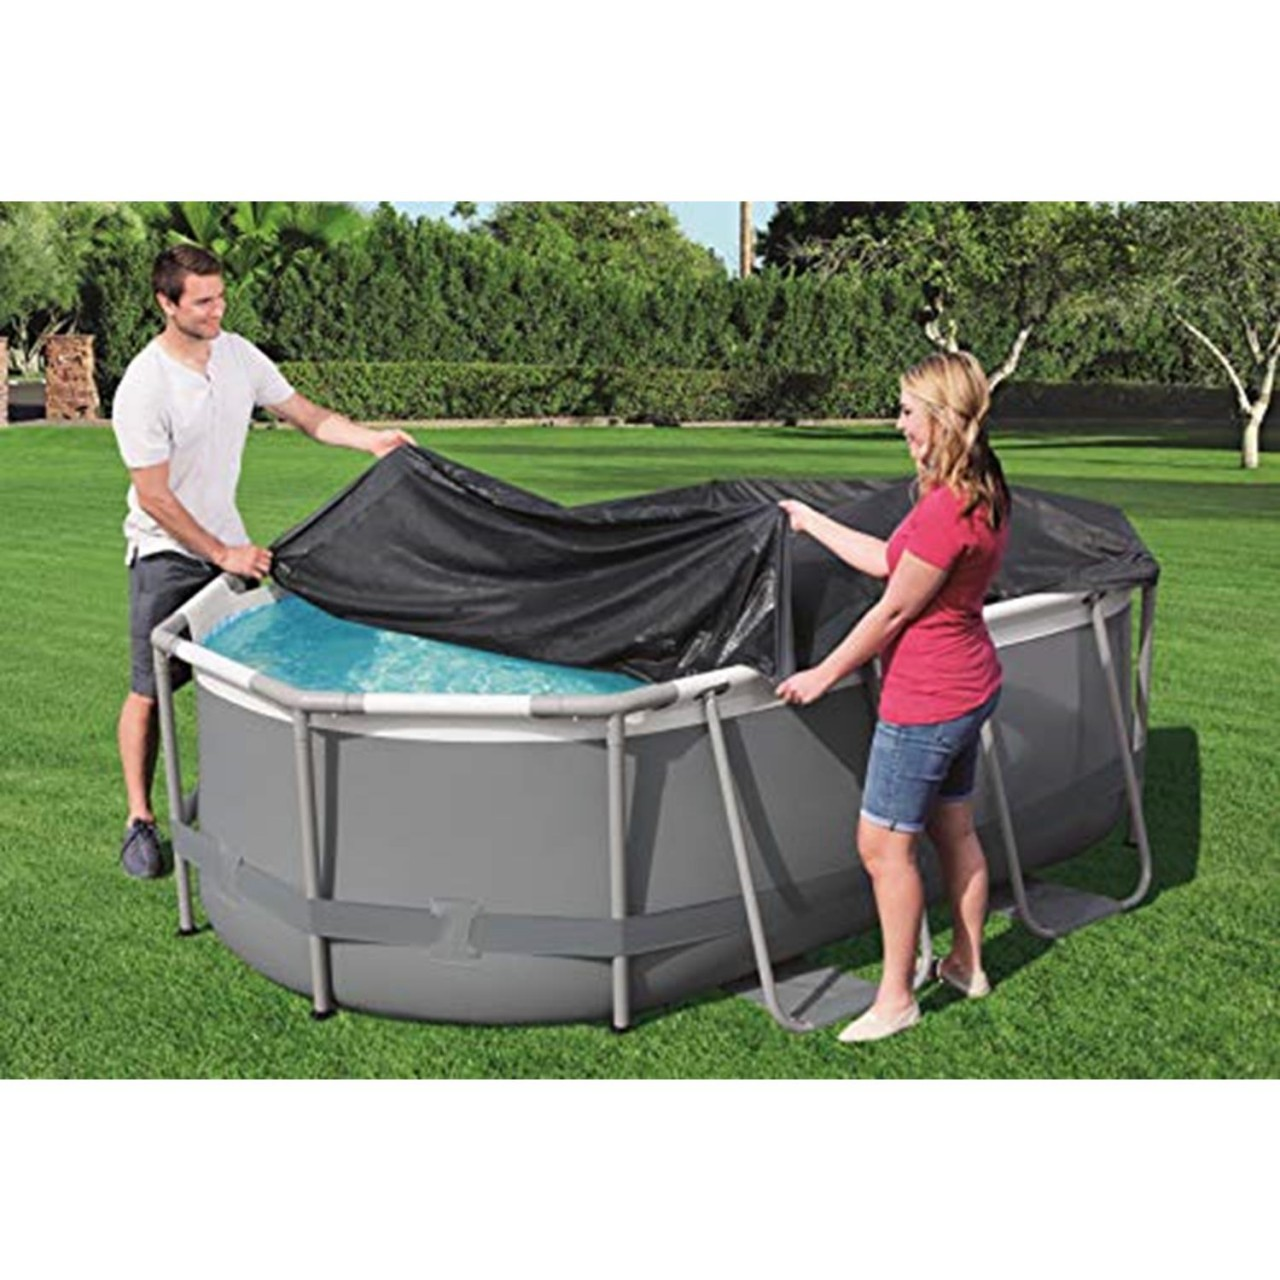 Bestway 58424 Pool Abdeckung für 300cmx200x84cm Power Steel Pool Oval